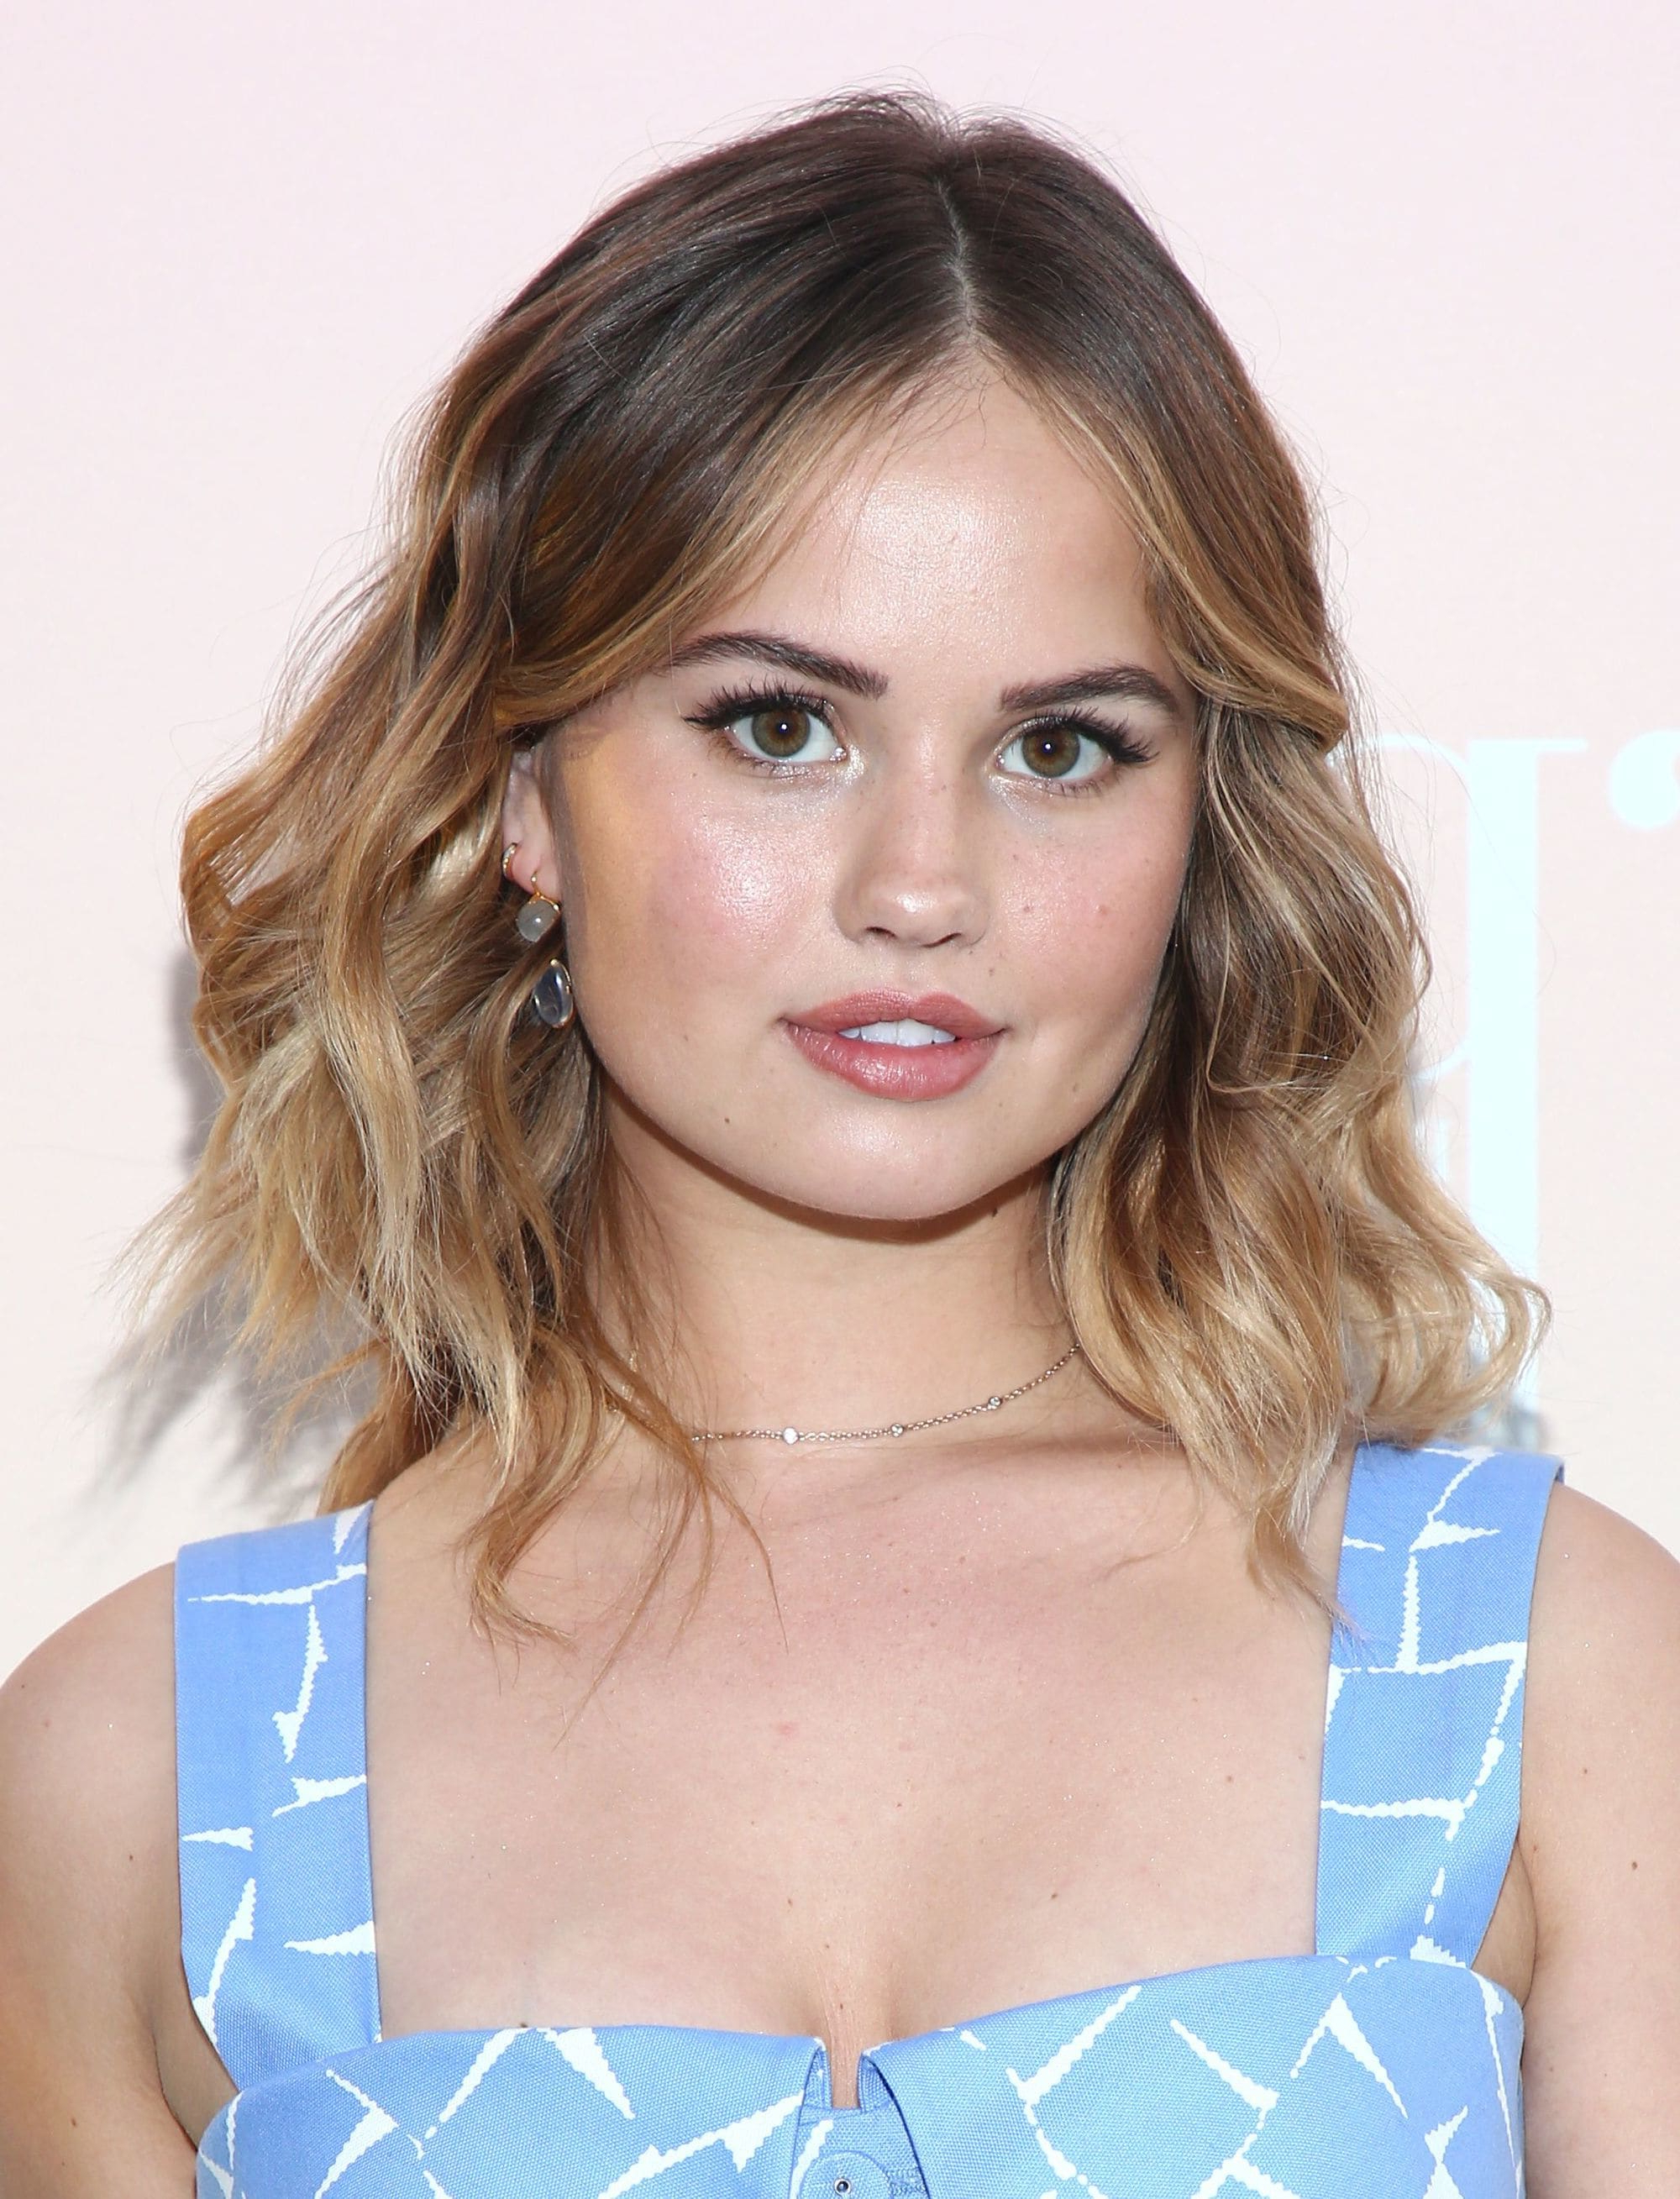 Hairstyles For A Round Face: 20 Sublime Styles That Will Flatter Inside Well Liked Medium Haircuts With Bangs For Round Face (View 11 of 20)